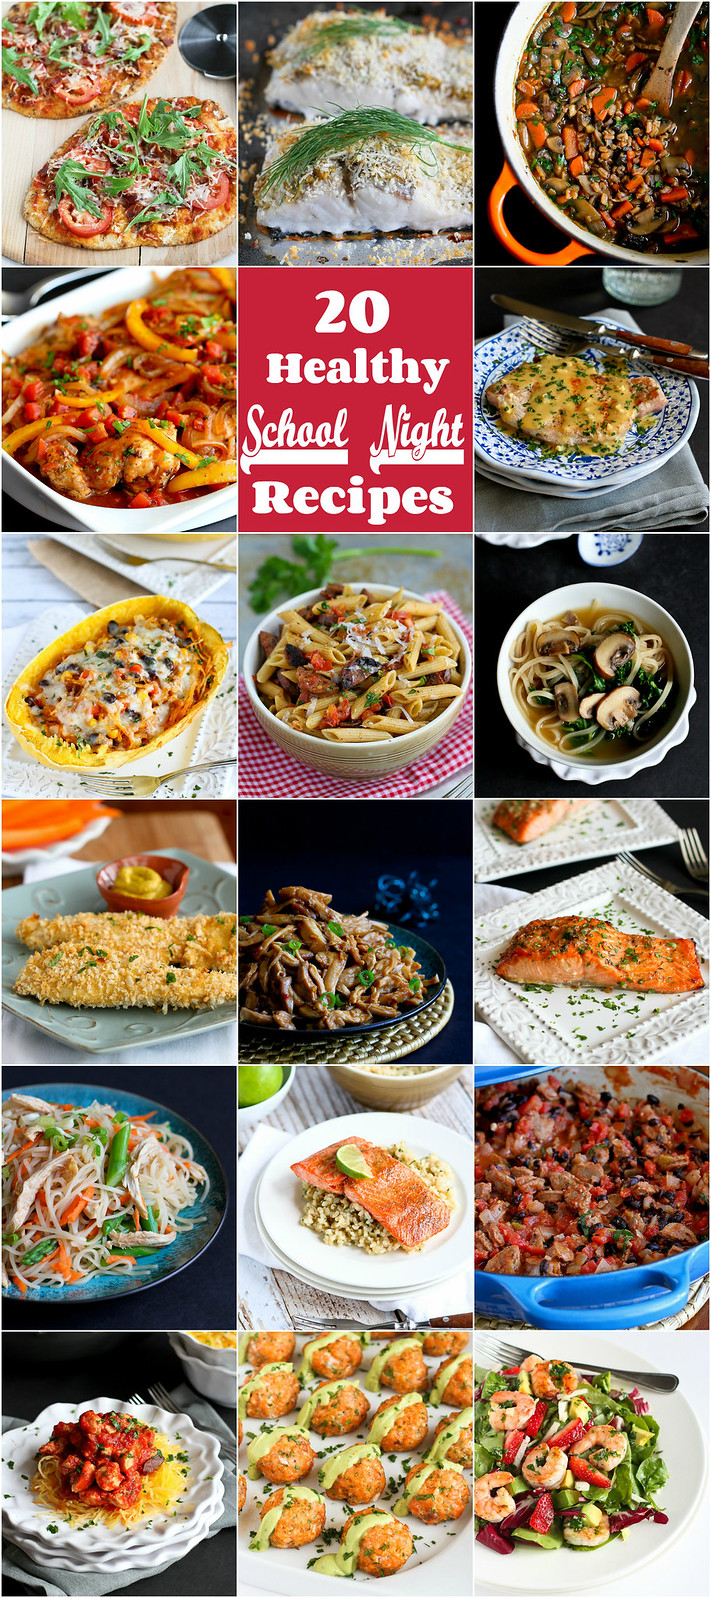 20 Healthy School Night Recipes | cookincanuck.com